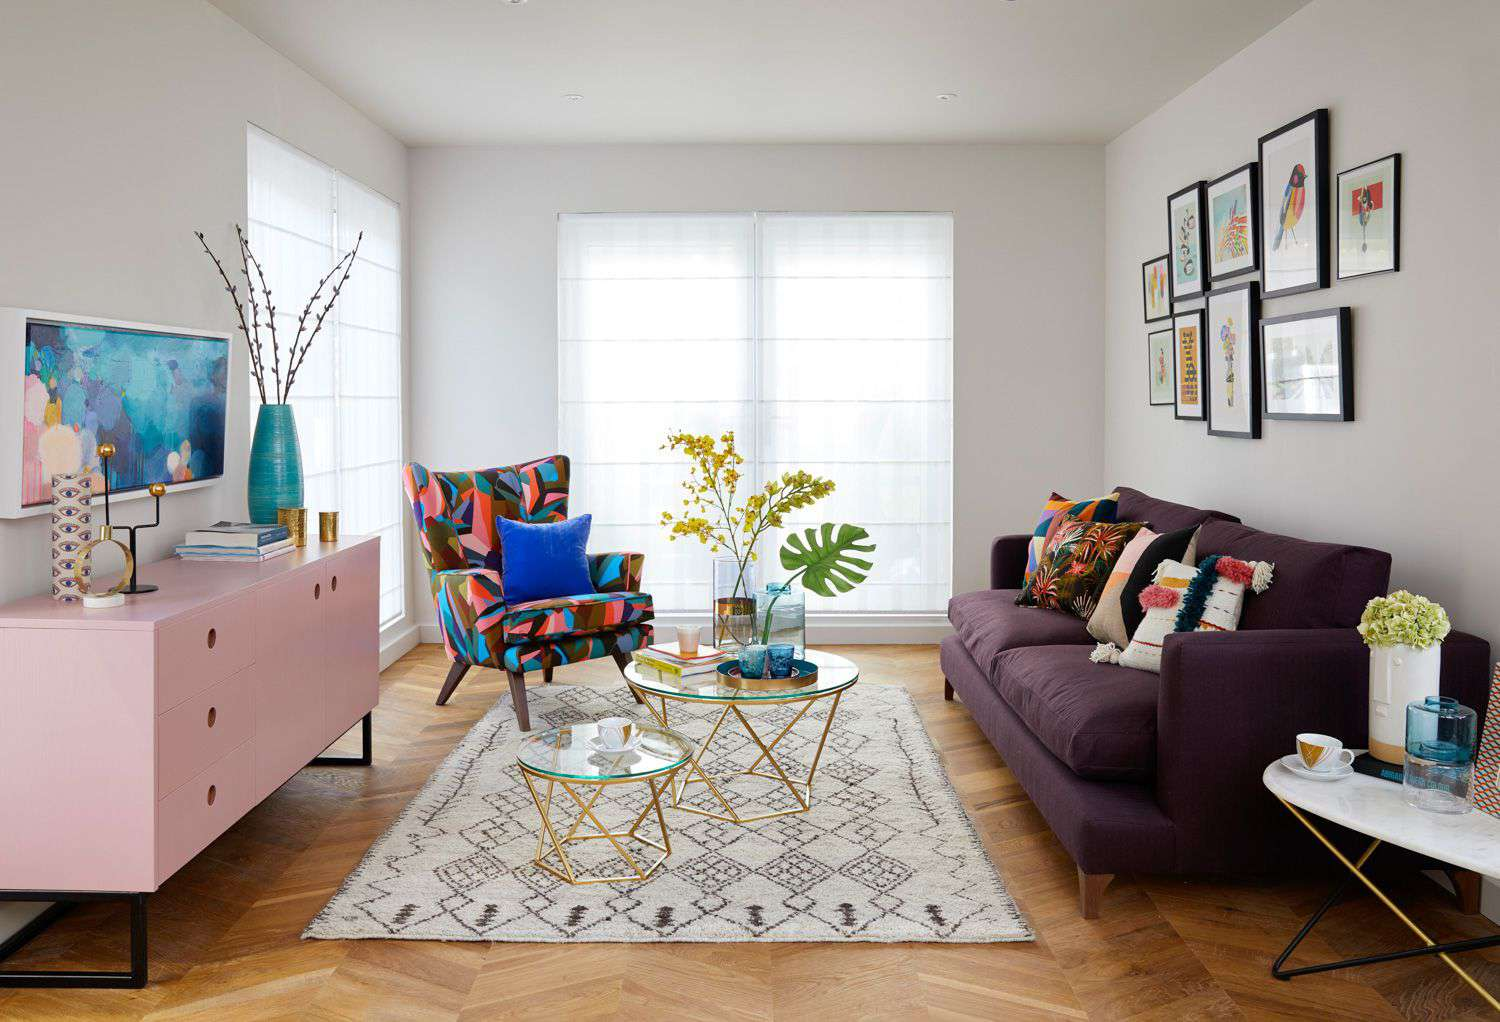 Eclectic and colorful living room with properly-sized rug.